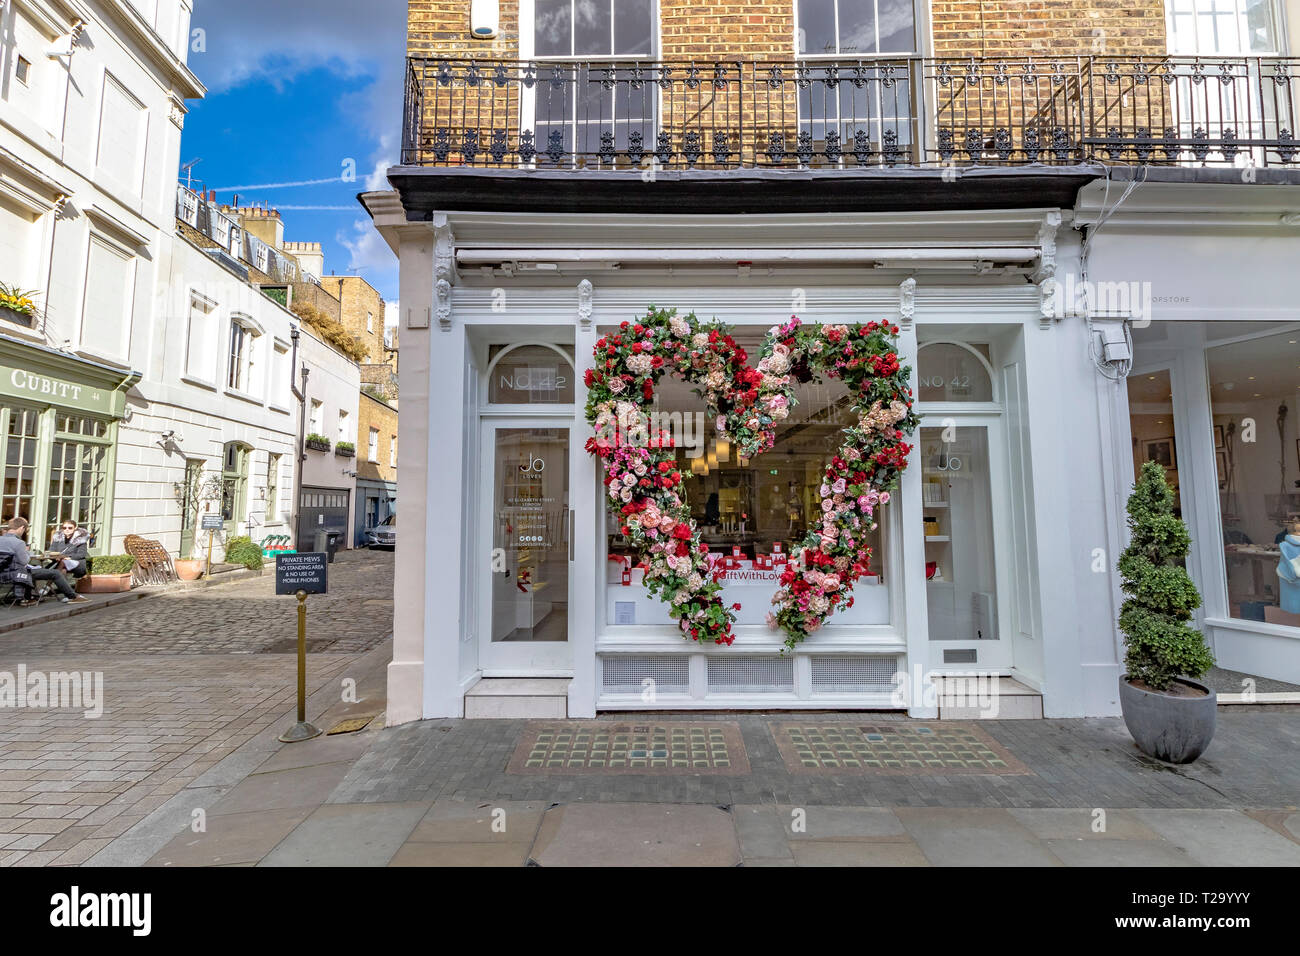 Jo Loves, a scent ,perfume and scented candle shop in Belgravia,London SW1 owned  by Jo Malone - Stock Image